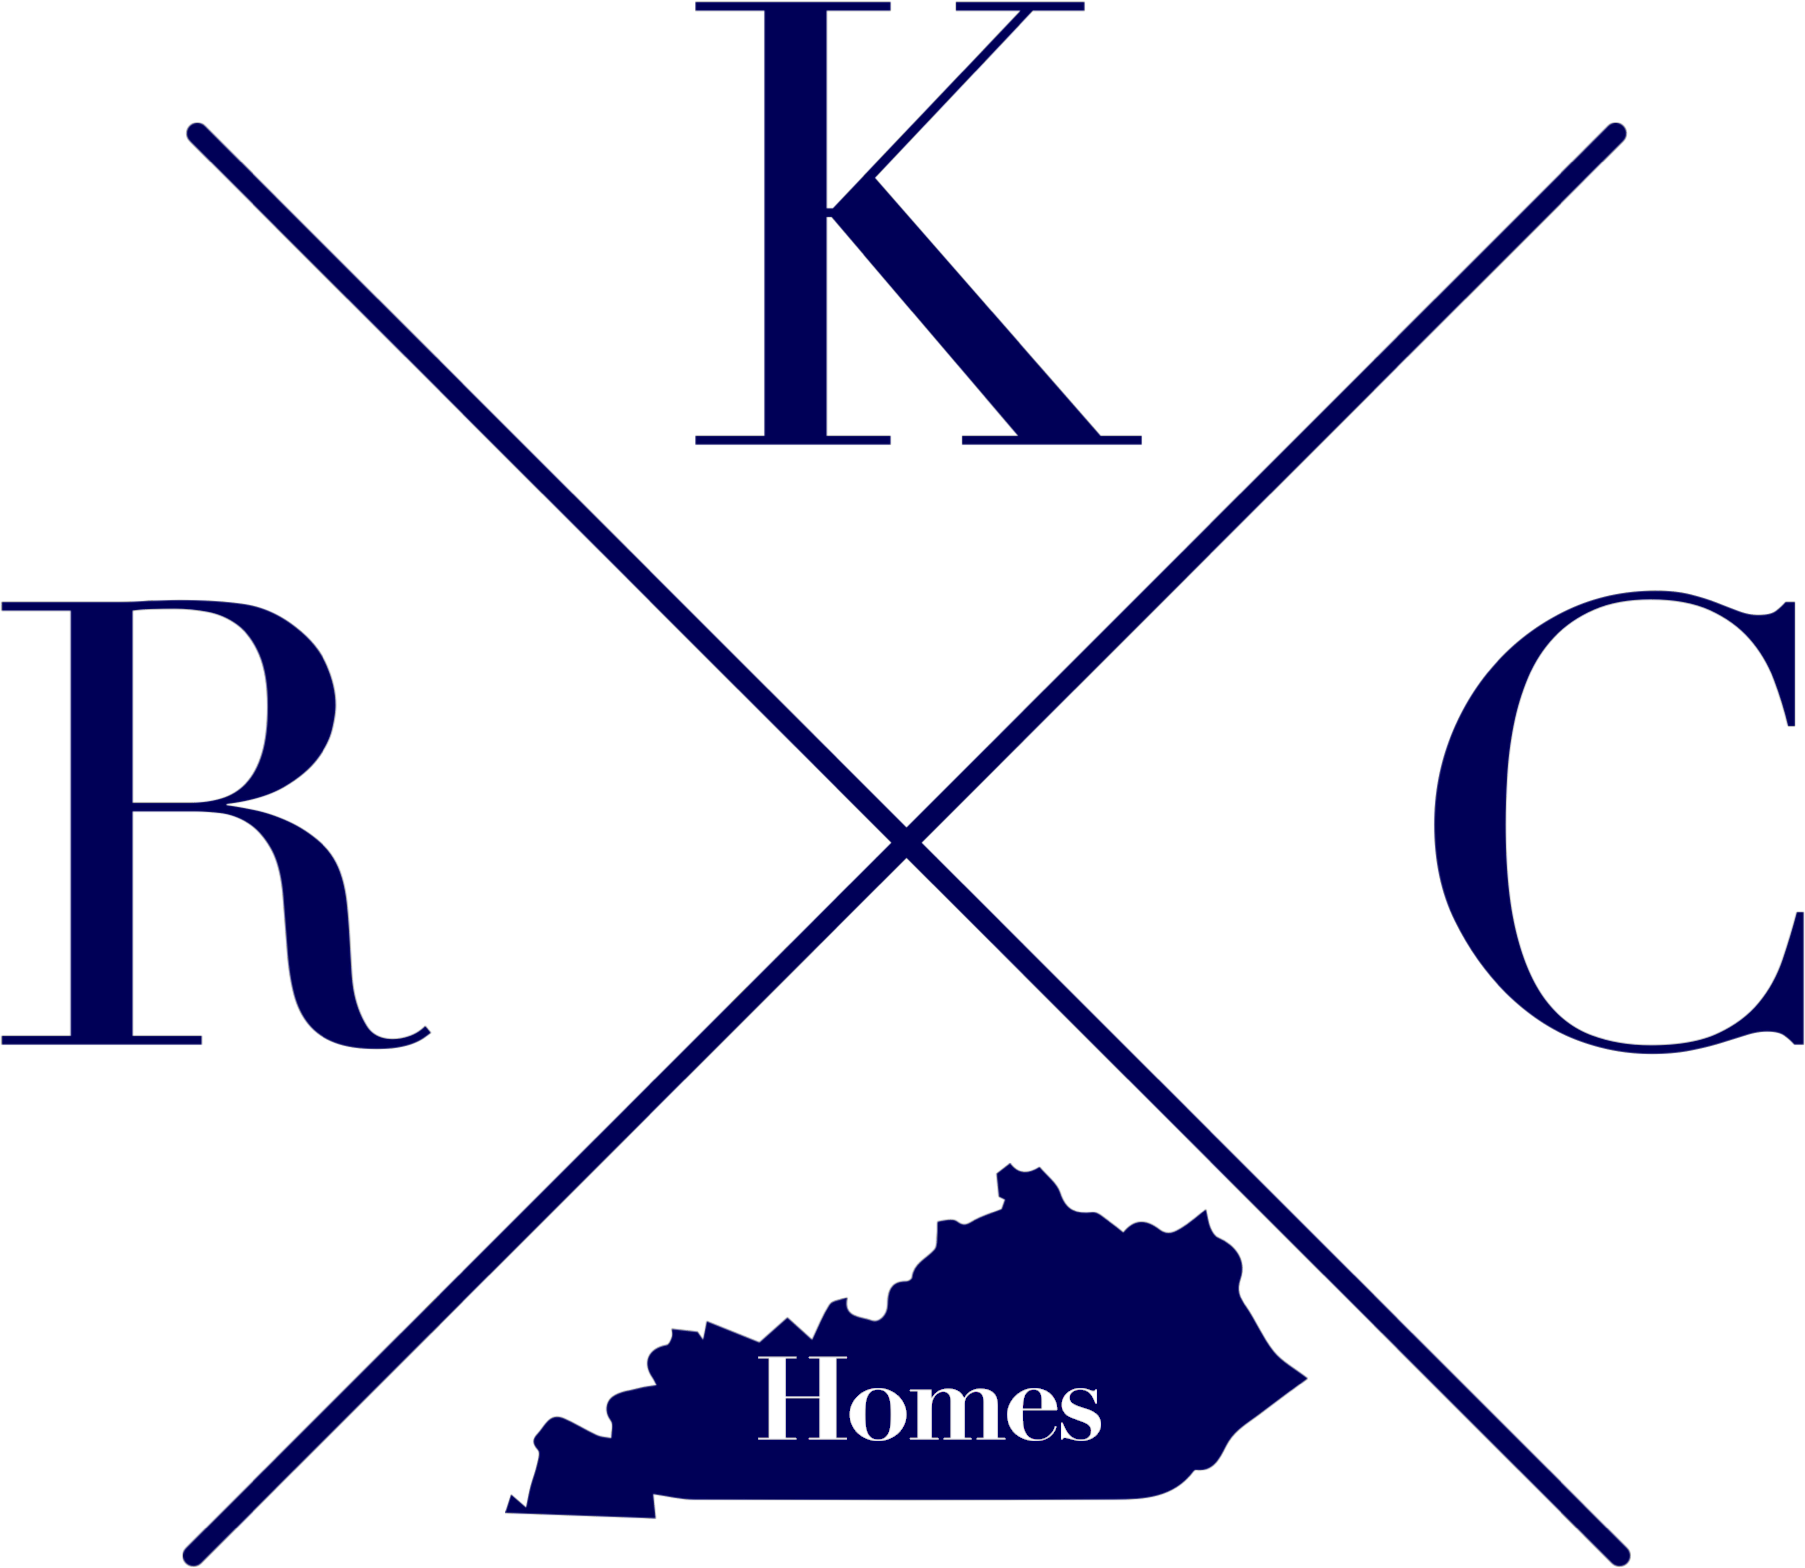 For More Information... - Fill out the contact form below to talk to KRC Homes about starting your own custom home.